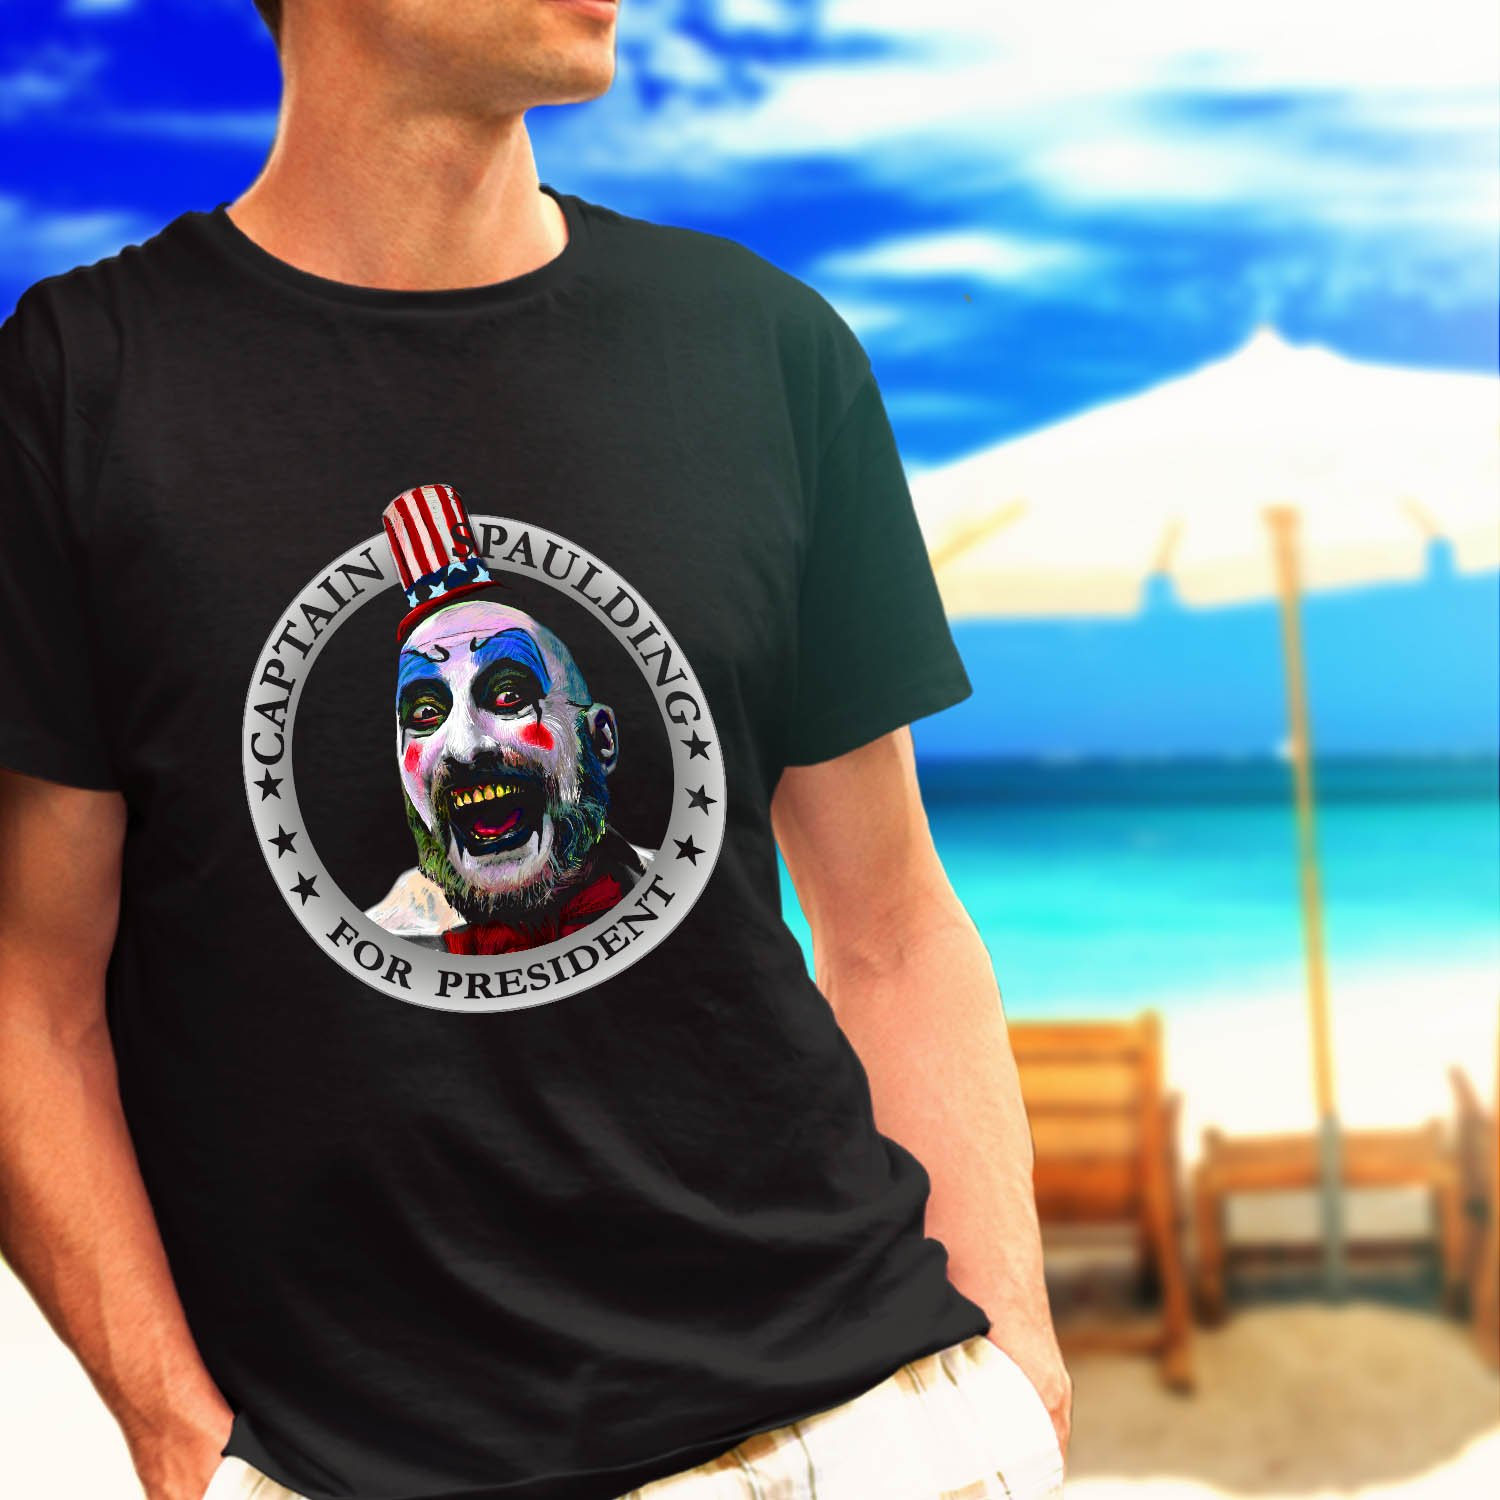 Captain Spaulding for President Rob Zombie black t-shirt tshirt shirts tee SIZE M